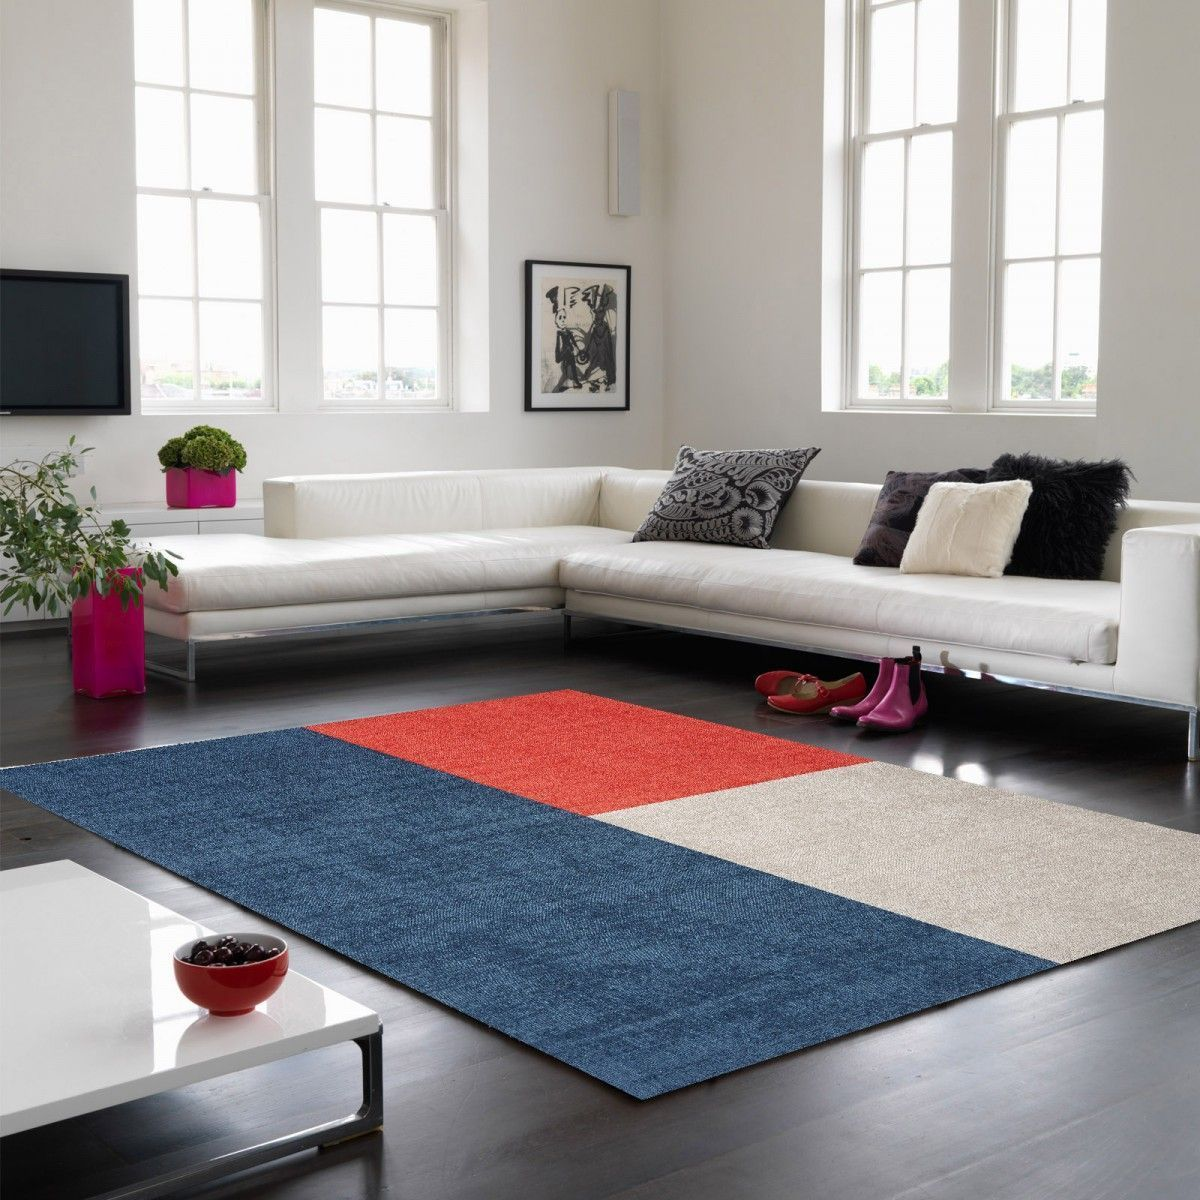 This Living Room Rugs Are Synonym With